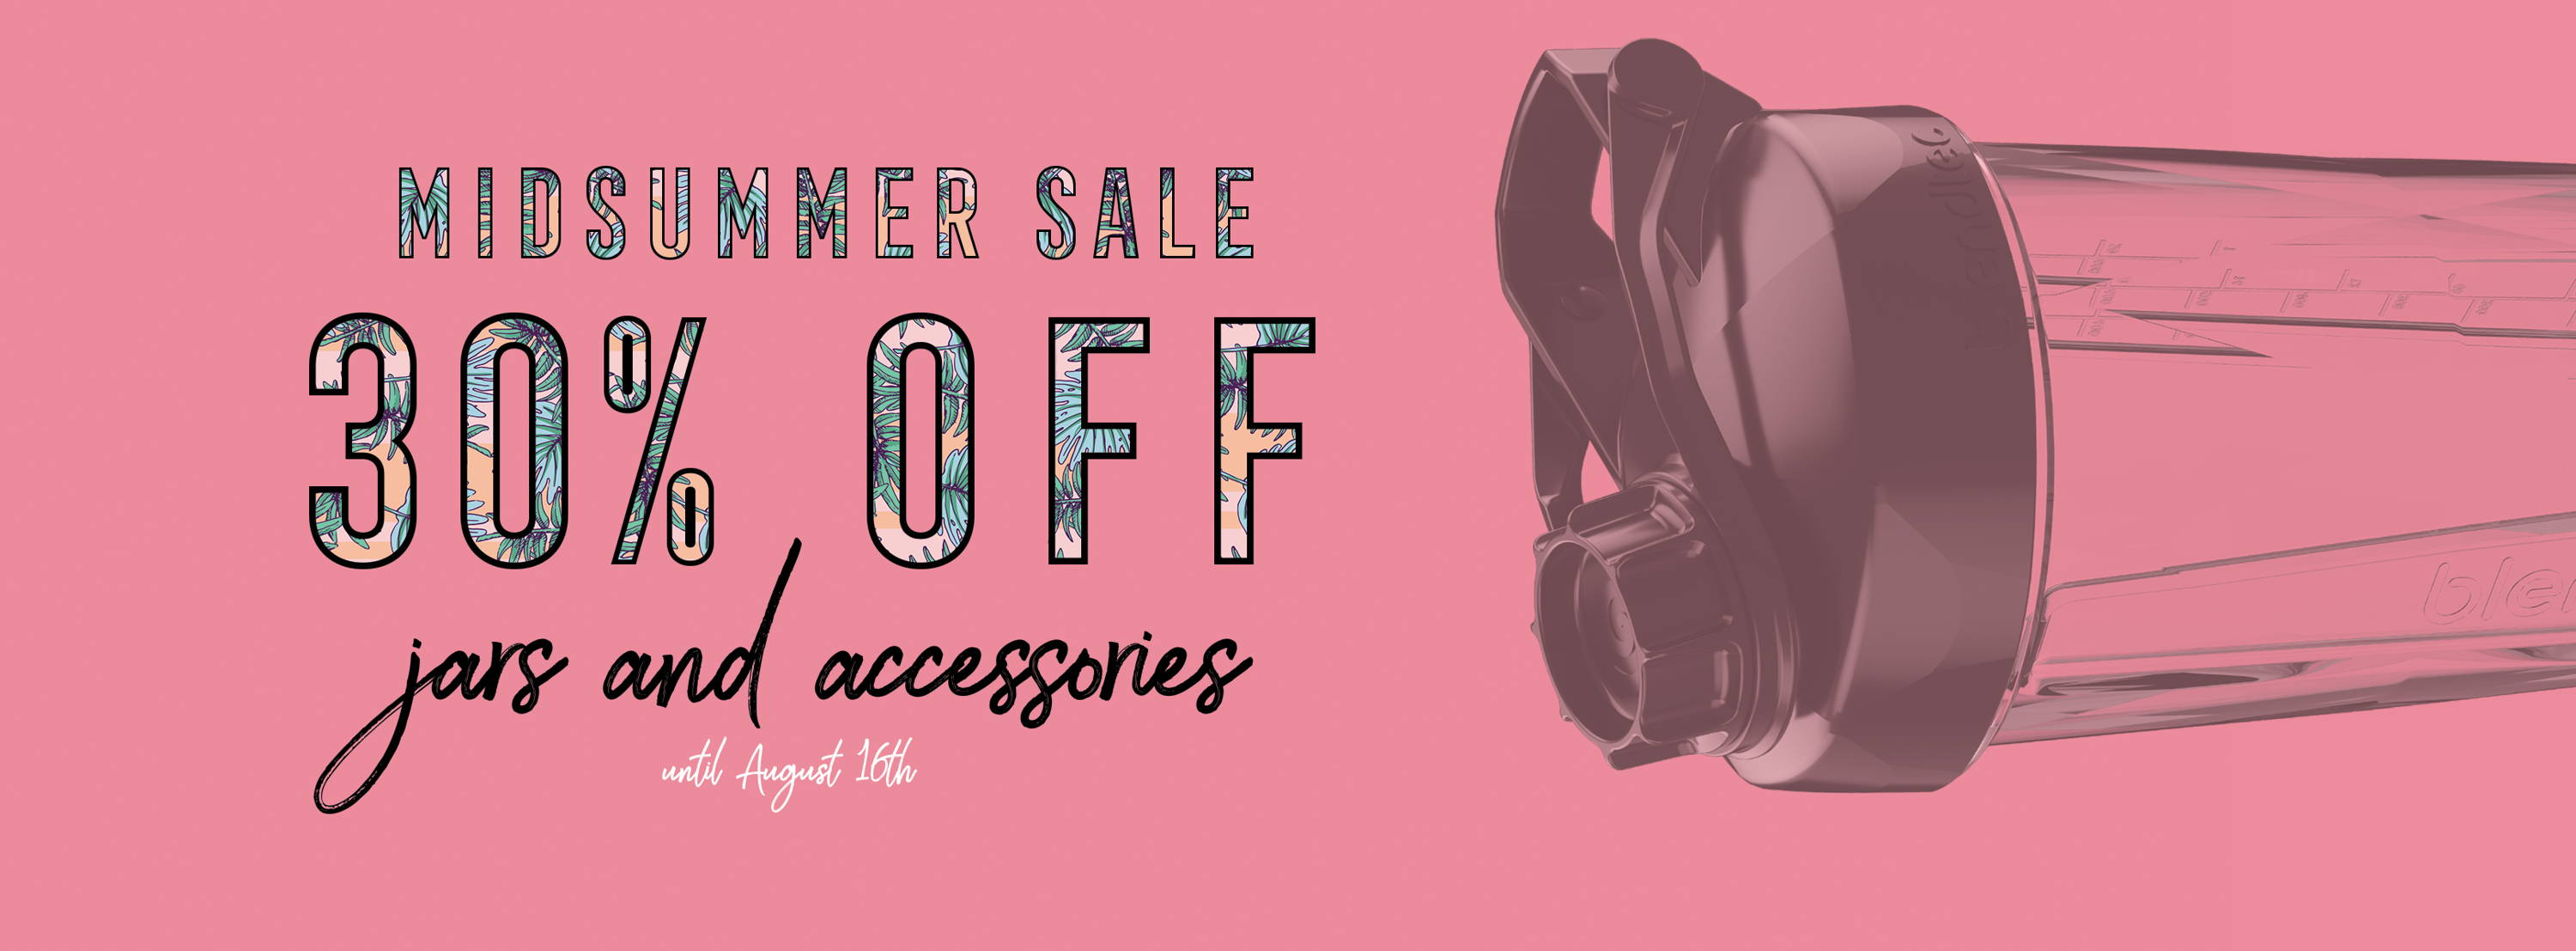 Midsummer Sale 30% Off Jars and Accessories